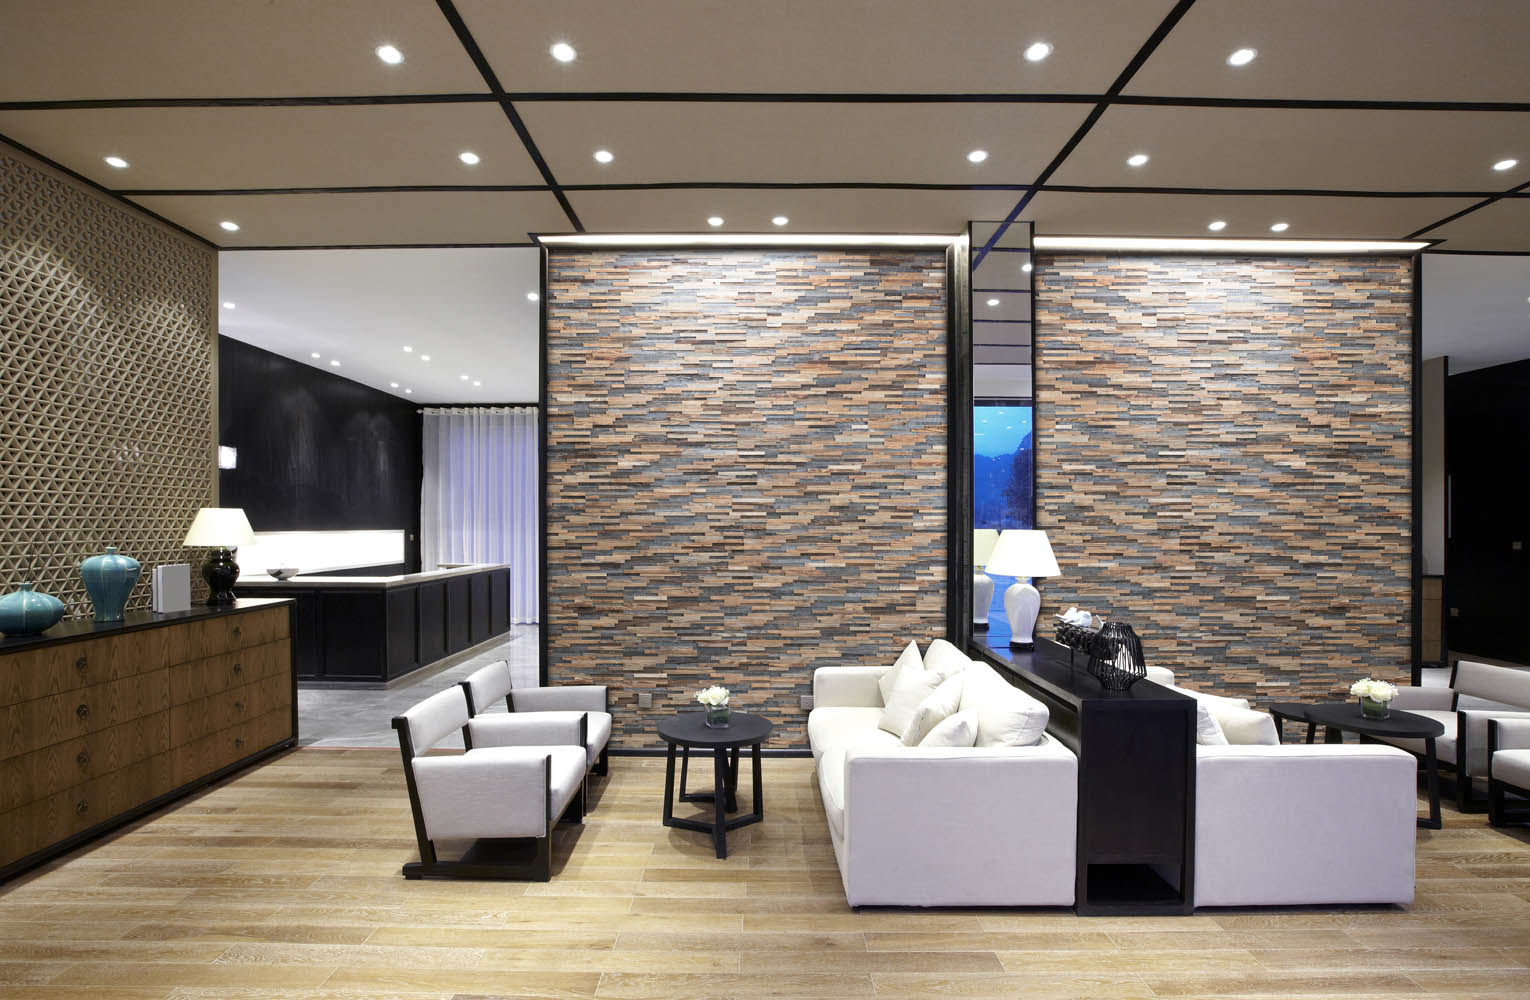 Lobby interior with wall panels